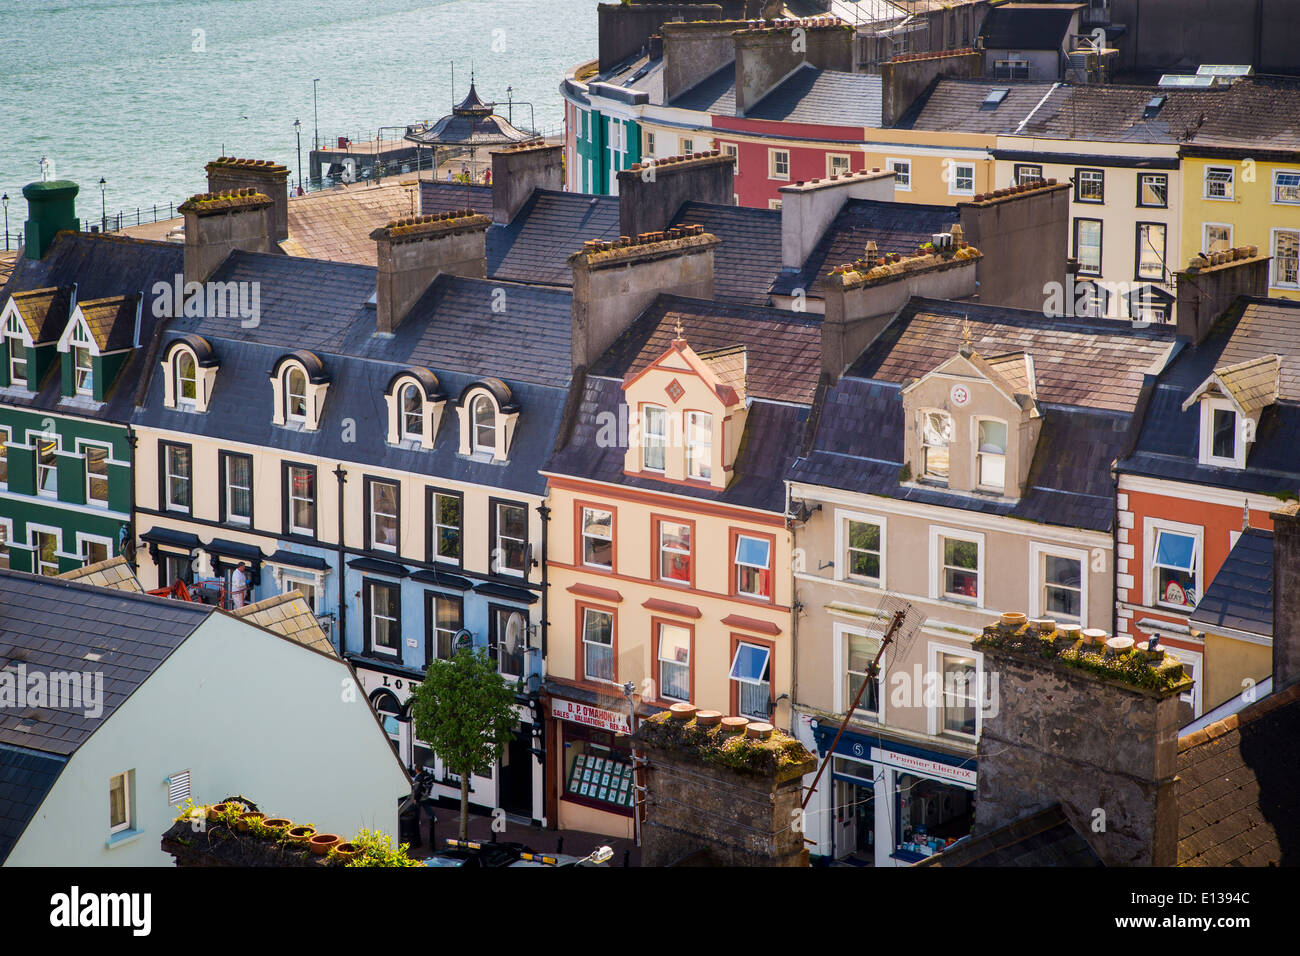 Attached homes near the wharf, Cobh, County Cork, Ireland - Stock Image